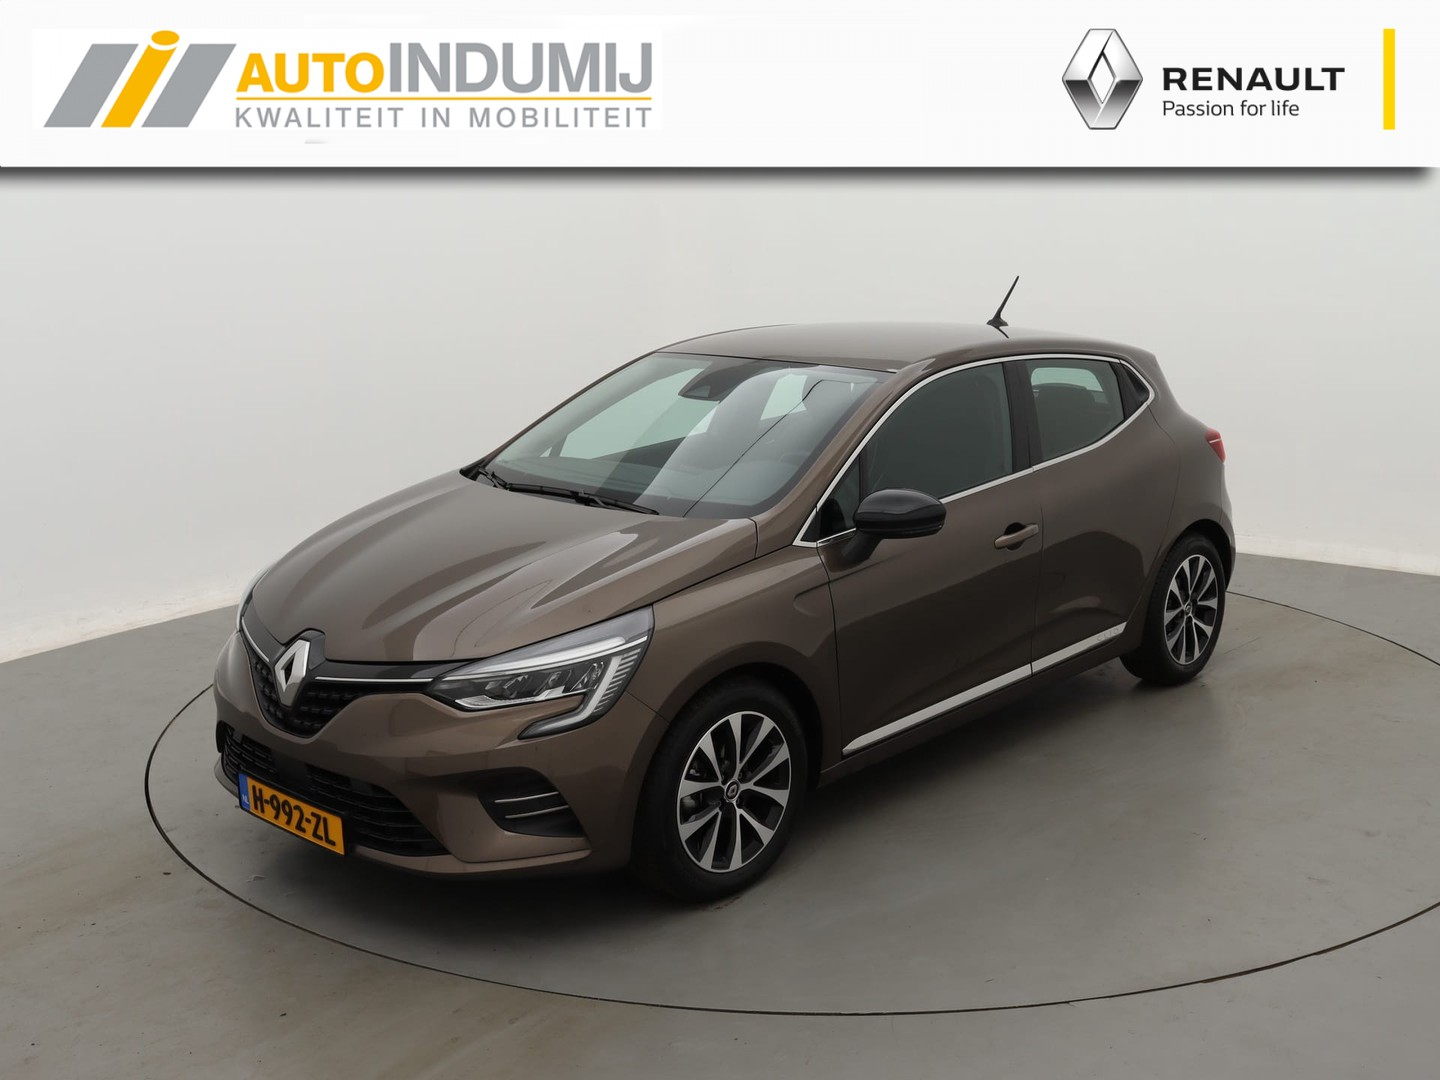 Renault Clio Tce 100 intens / climate control / pure-led / apple carplay & android auto